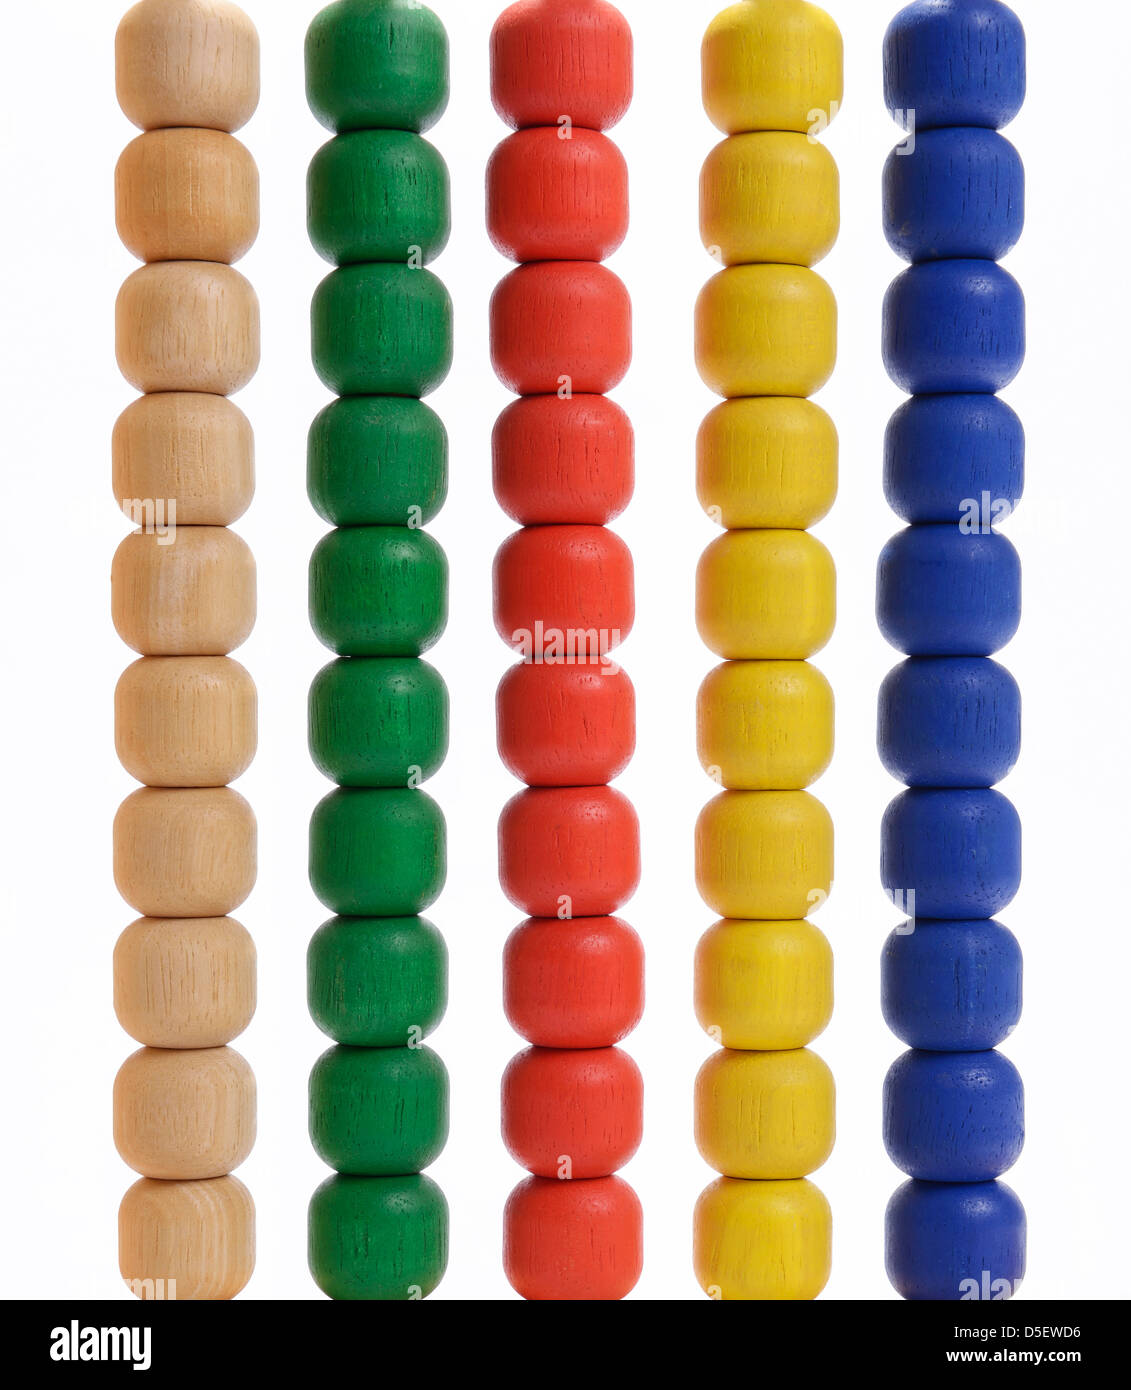 Abacus beads - Stock Image